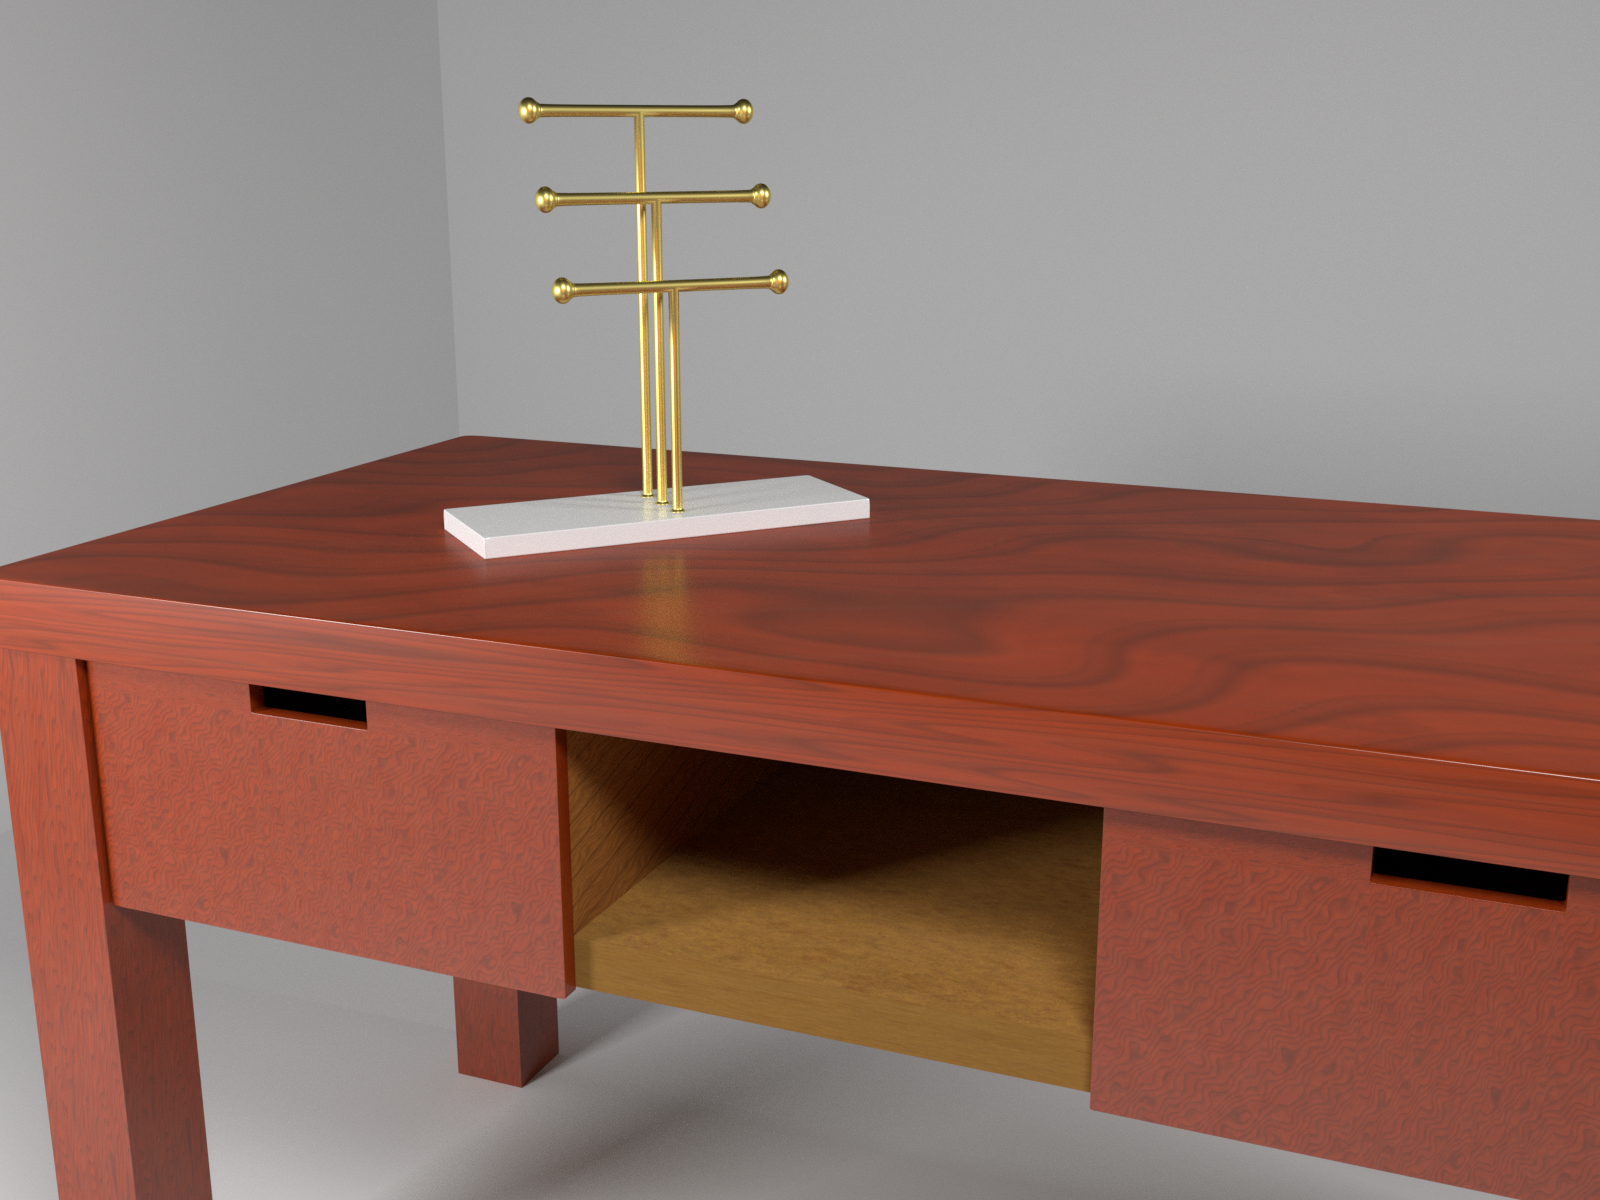 Golden jewelry holder on mahogany desk preview image 1